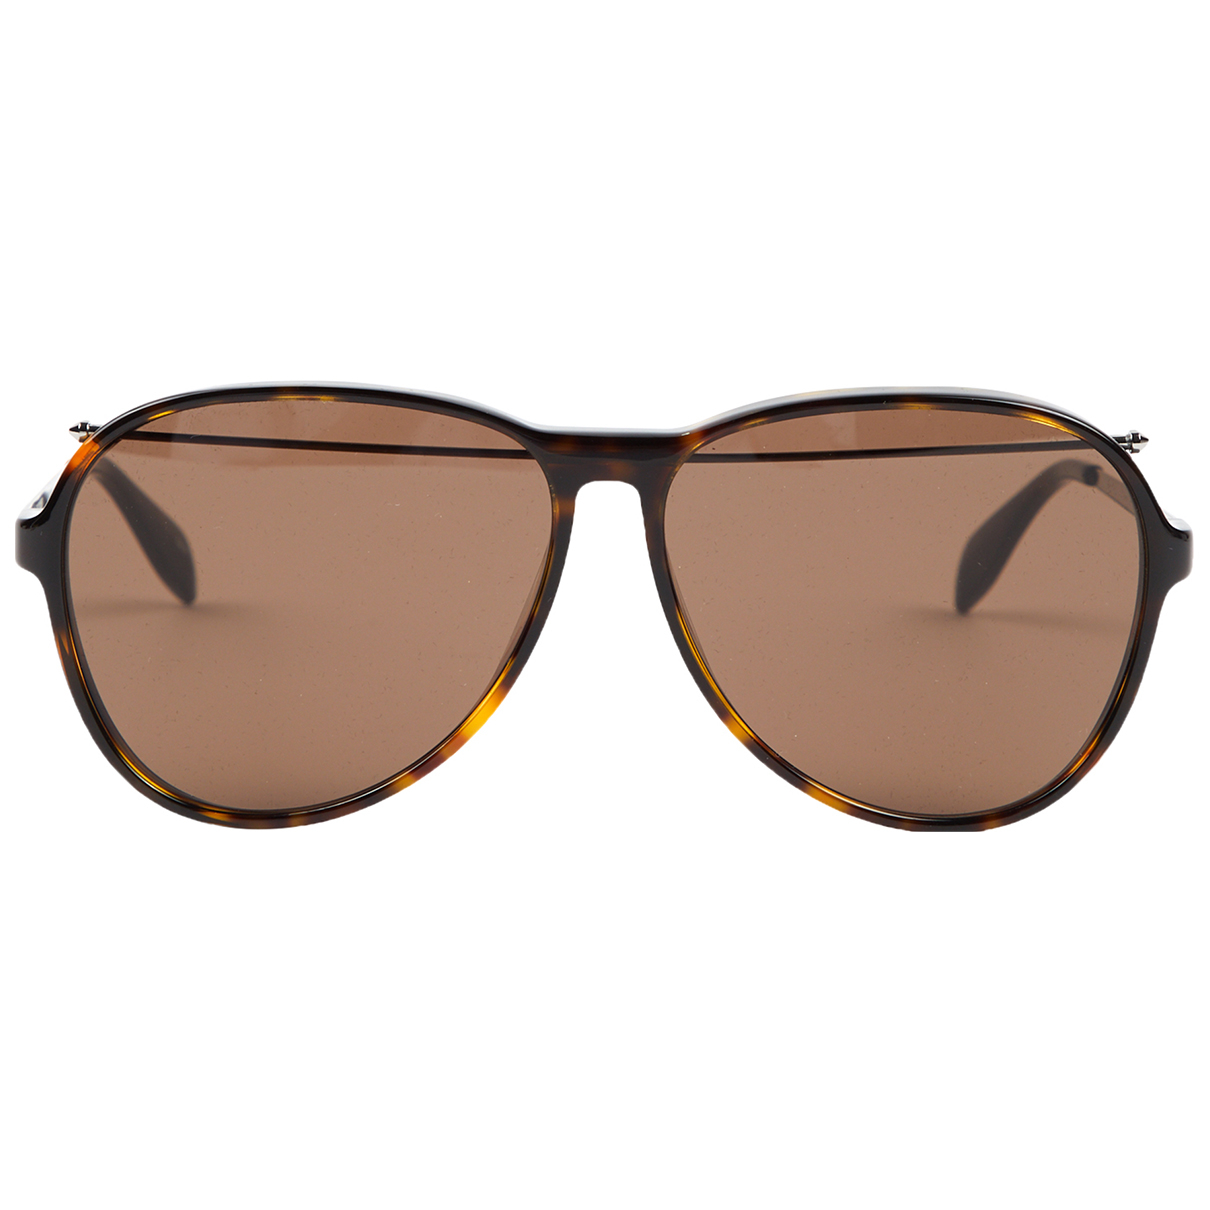 Alexander Mcqueen \N Brown Sunglasses for Women \N